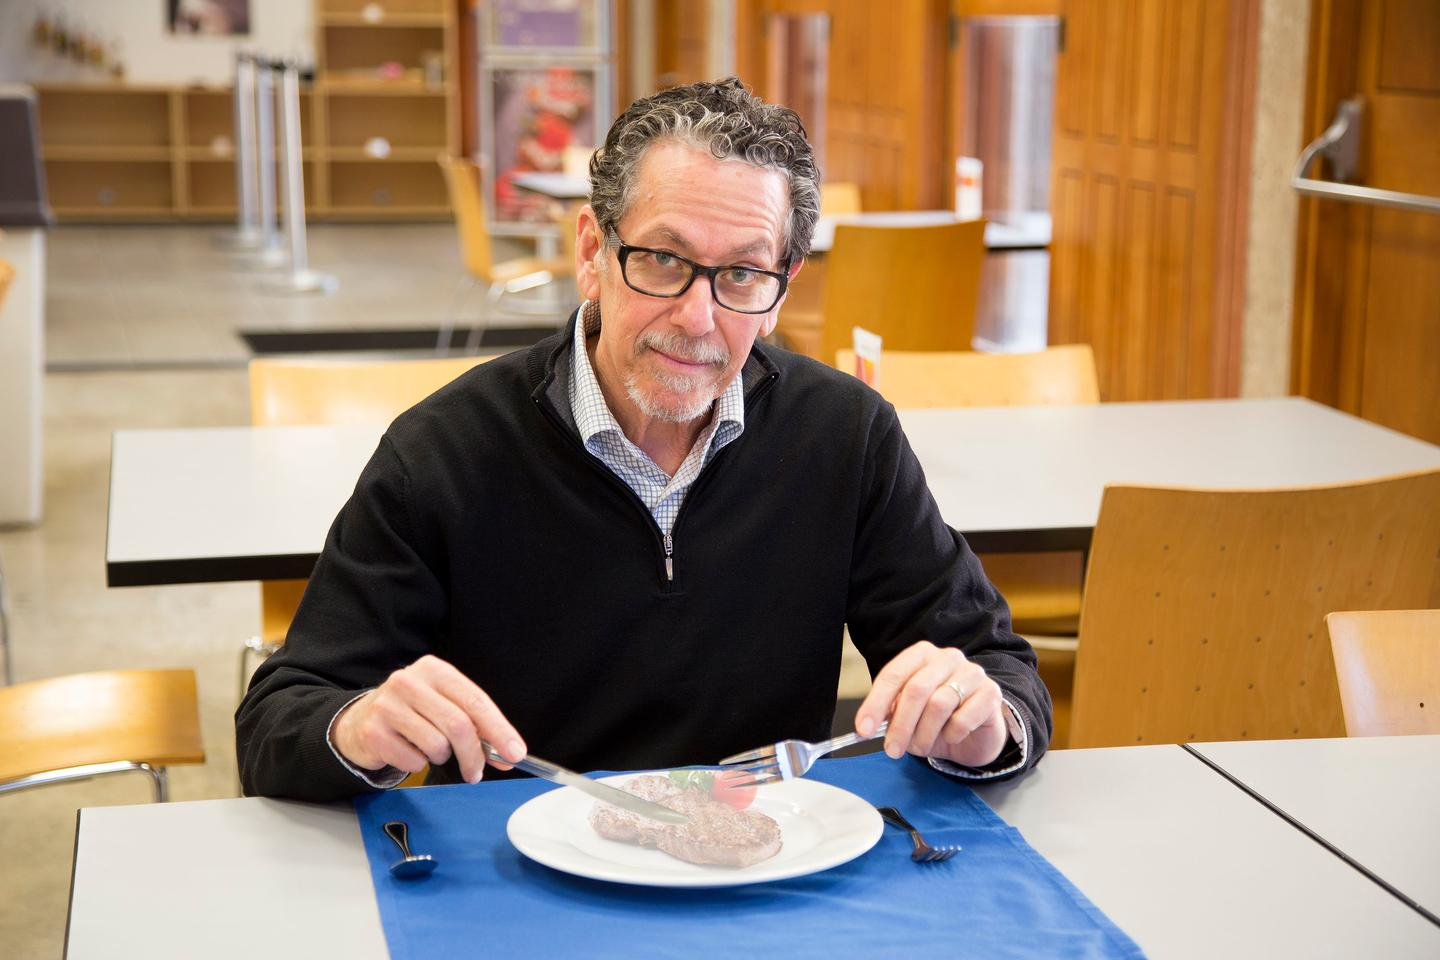 """Lead scientist Ronald Evans consuming an """"imaginary meal,"""" of the type that fexaramine could cause the body to believe is being consumed (Photo: Salk Institute for Biological Studies)"""